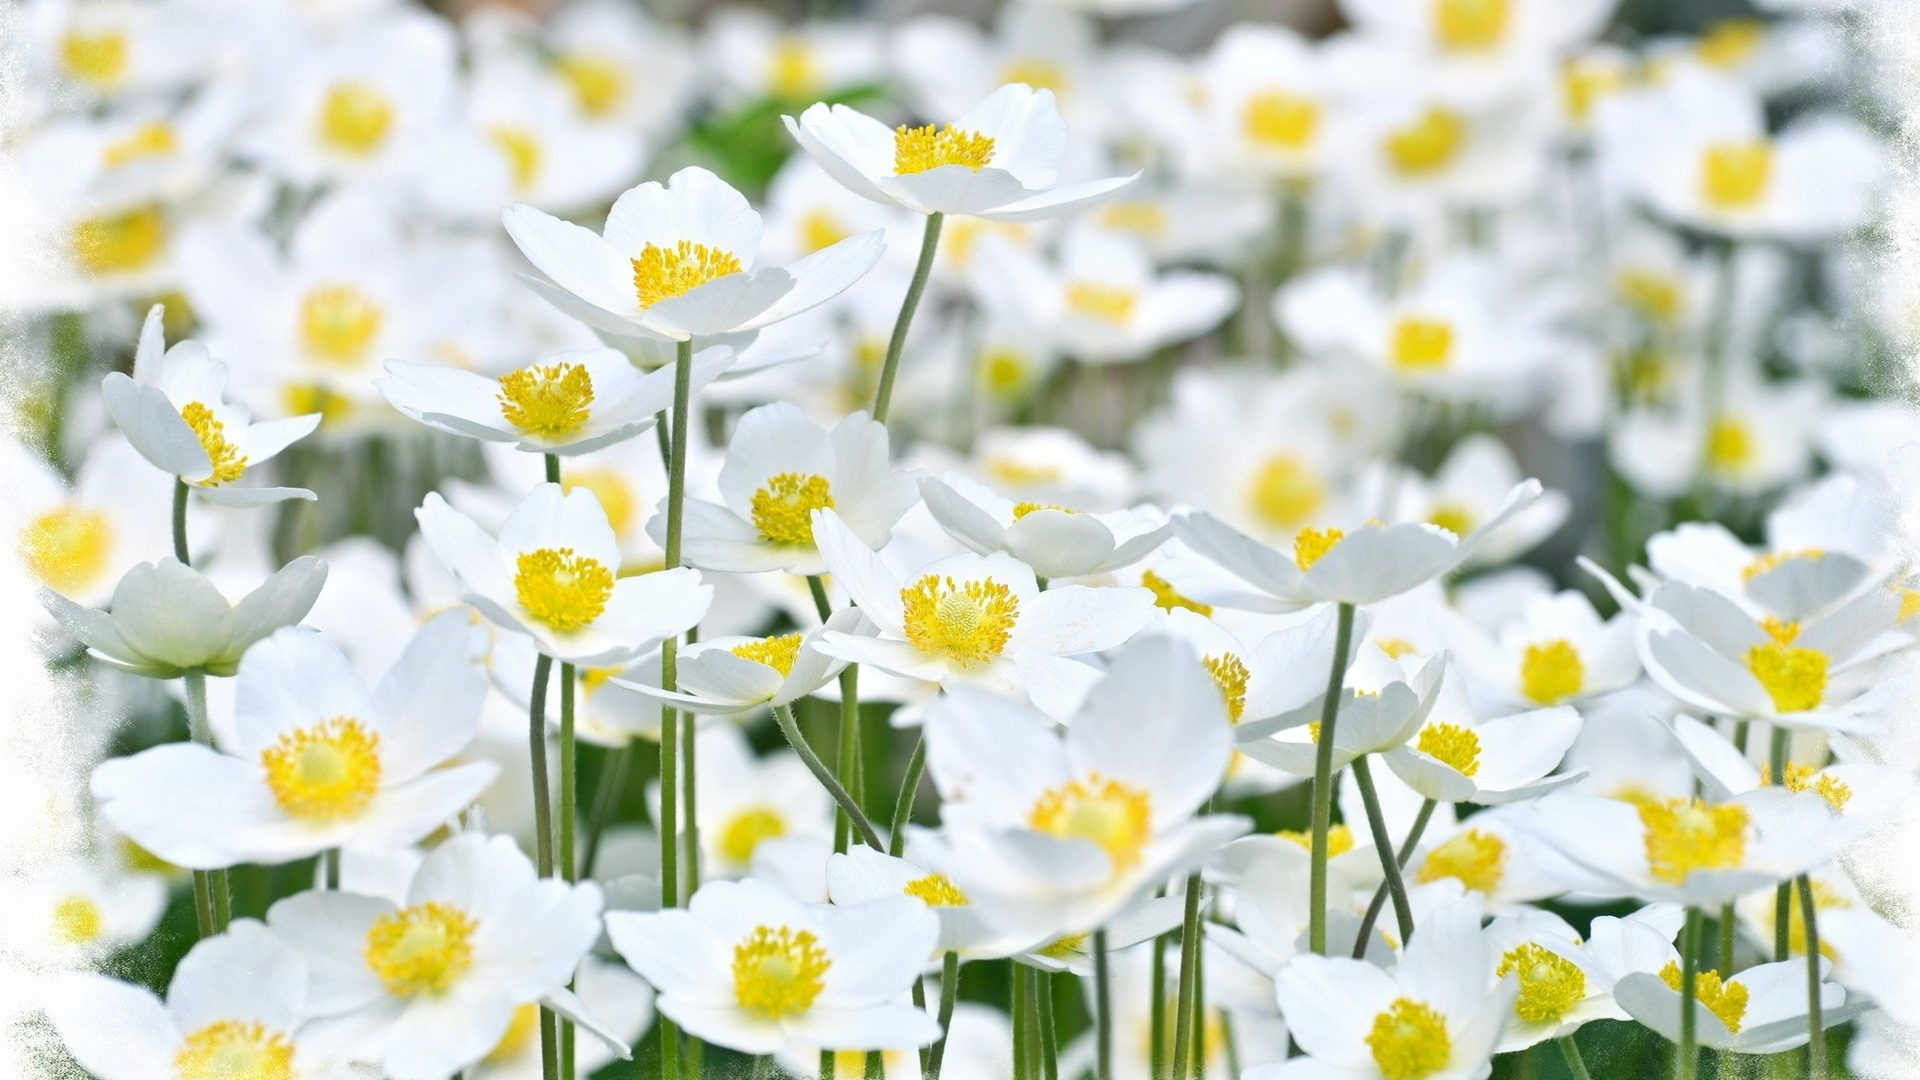 Nature Bright Garden Petals Flowers Fields Yellow White Plants Wallpaper  Download For Mobile Phone Detail